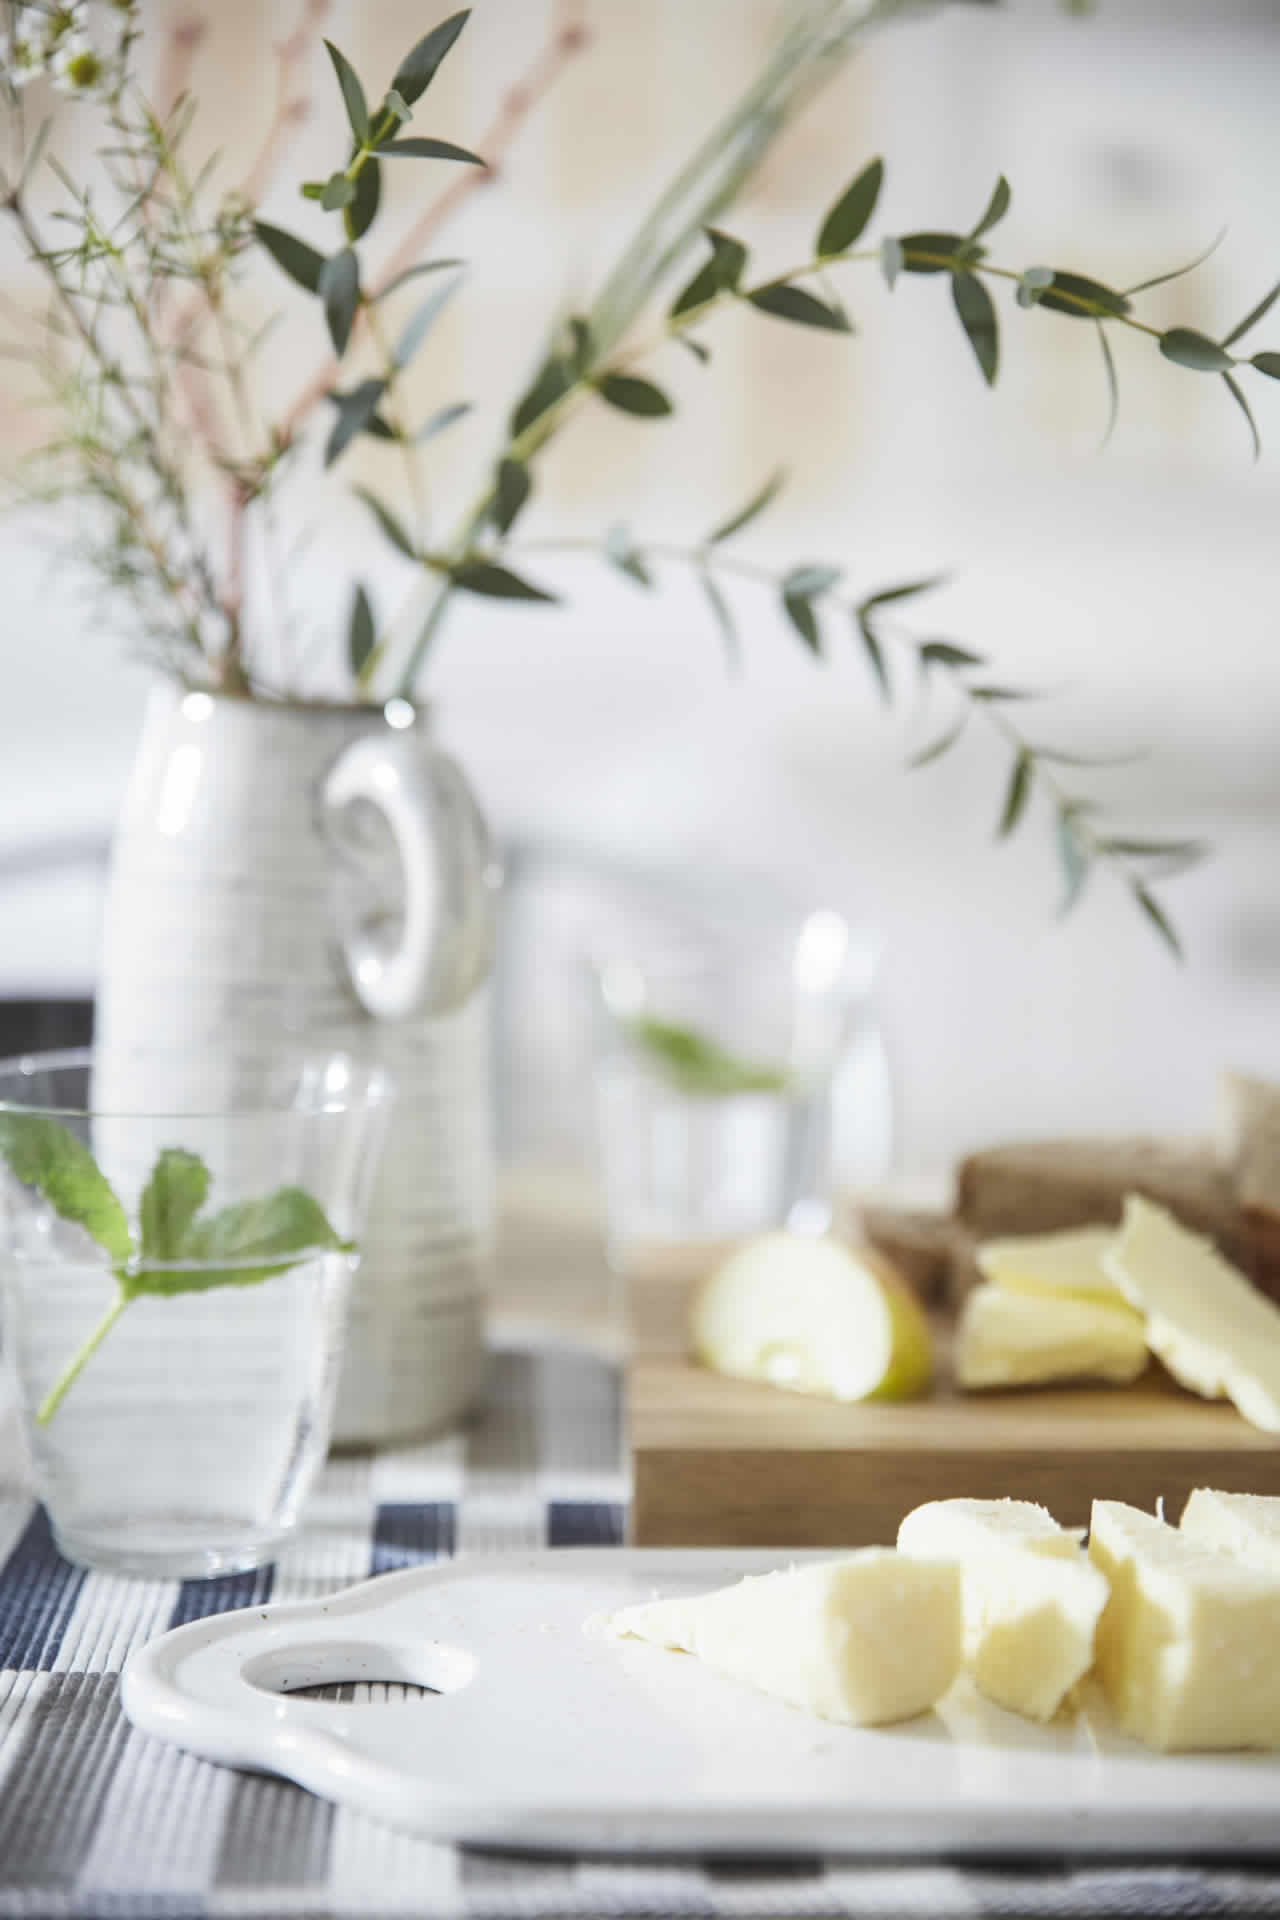 IKEA Ideas - A simple yet beautiful table setting